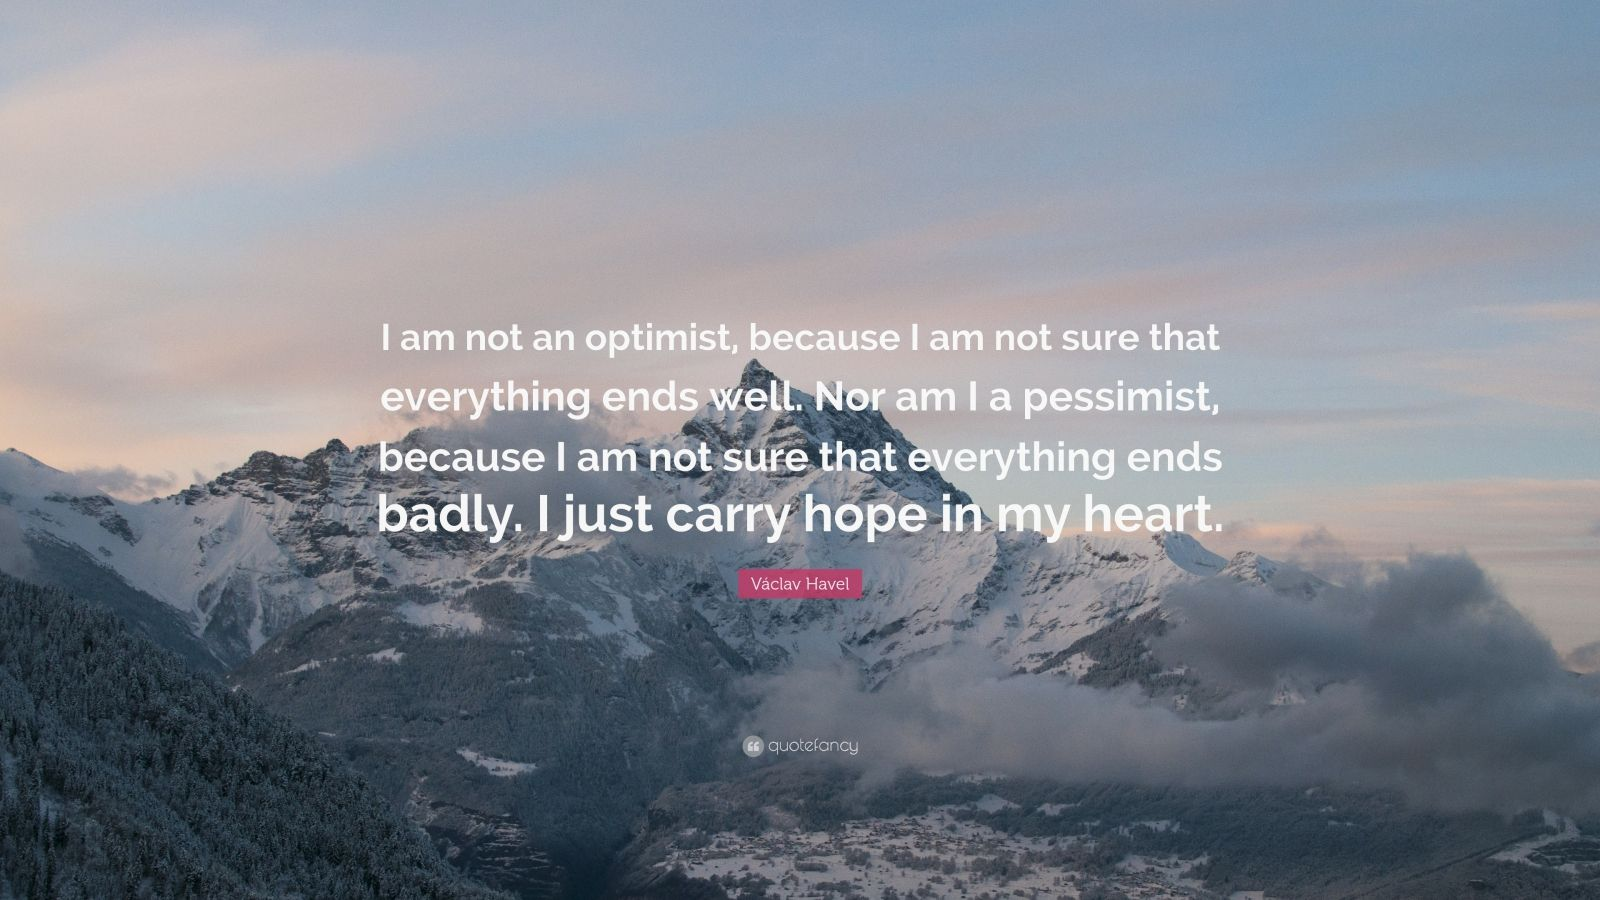 """Václav Havel Quote: """"I am not an optimist, because I am not sure that everything ends well. Nor am I a pessimist, because I am not sure that everything ends badly. I just carry hope in my heart."""""""